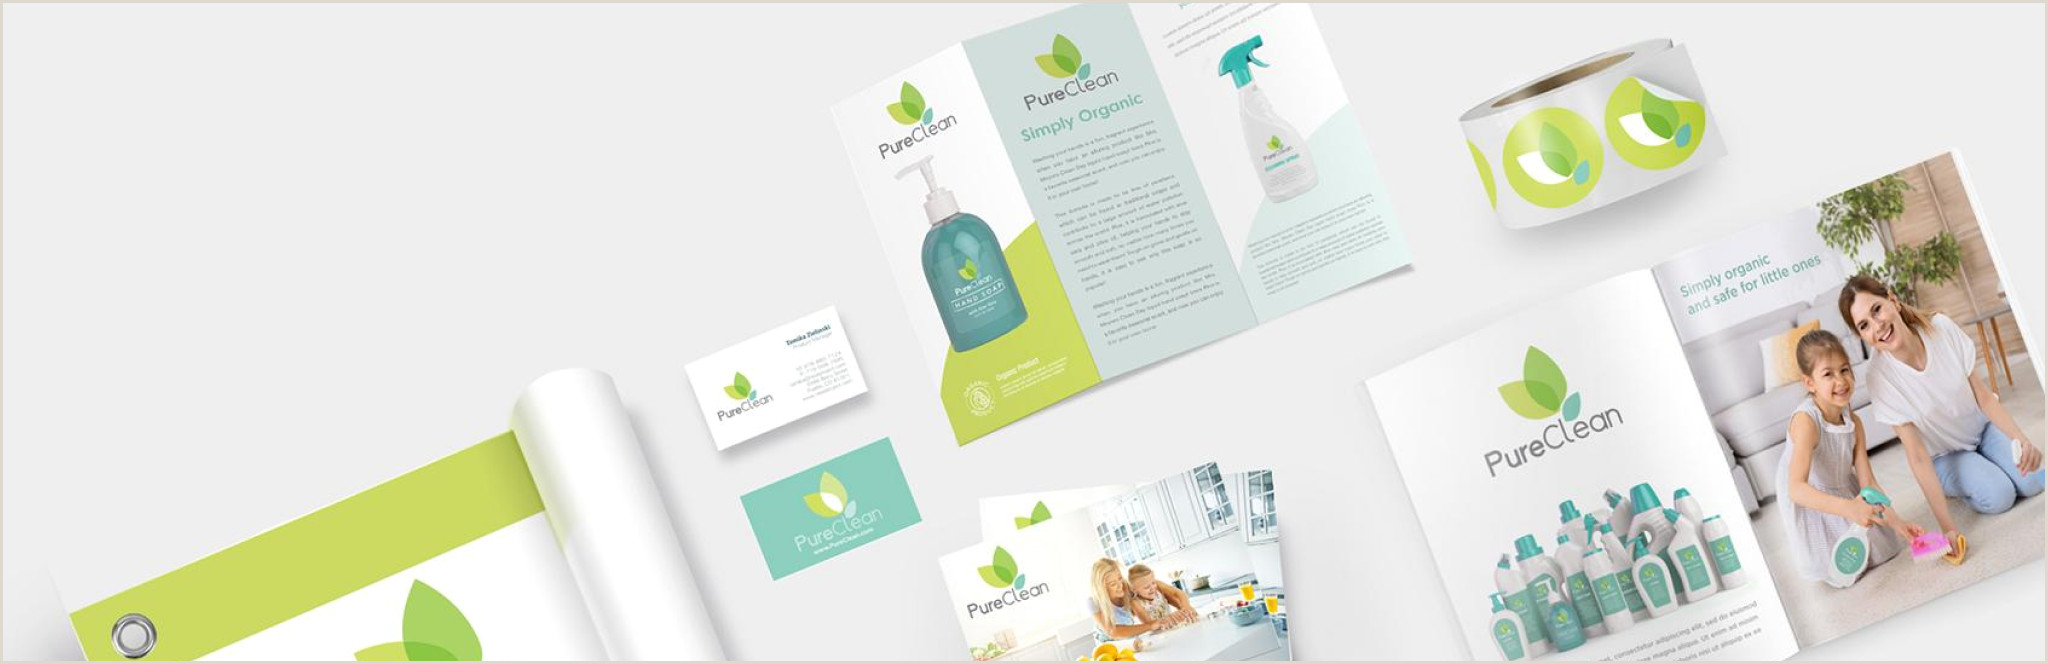 Best Business Cards Austin Printplace High Quality Line Printing Services